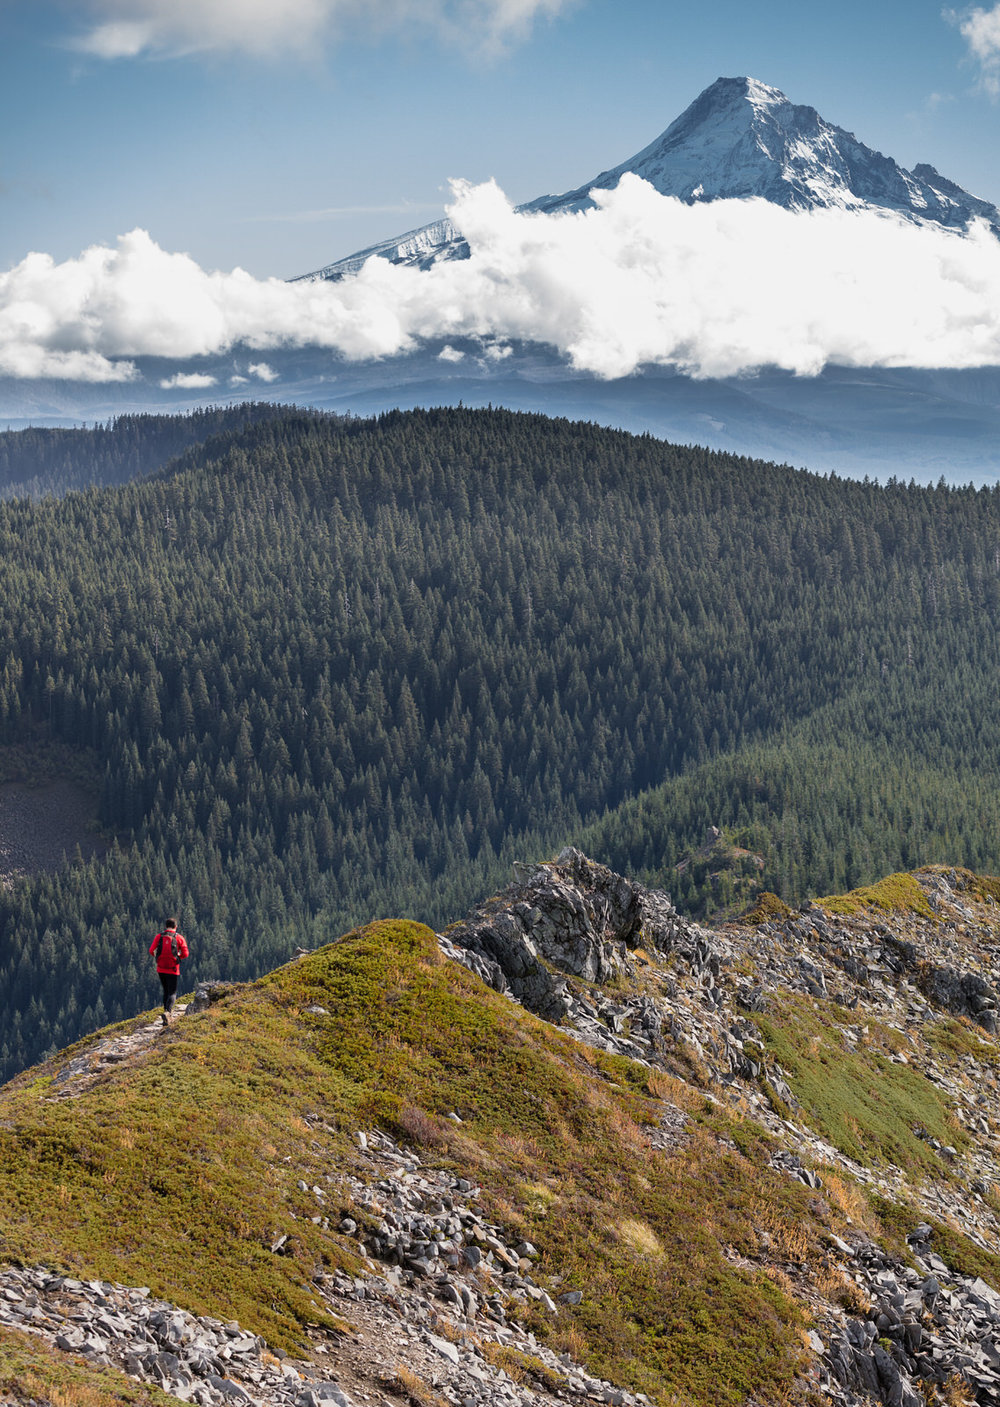 Trail runner on Tomlike Mountain